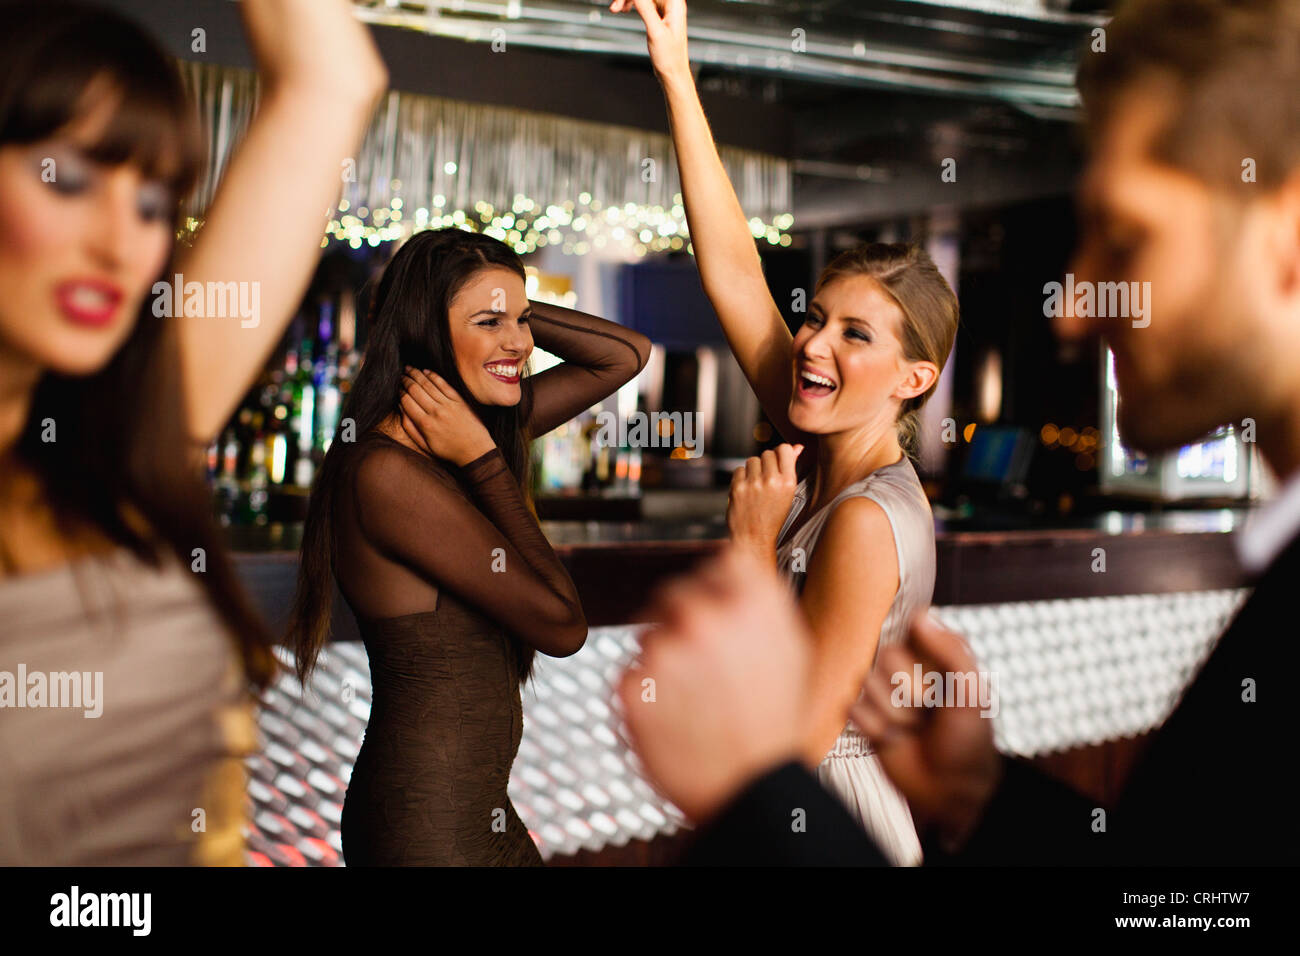 Smiling friends dancing in bar Photo Stock